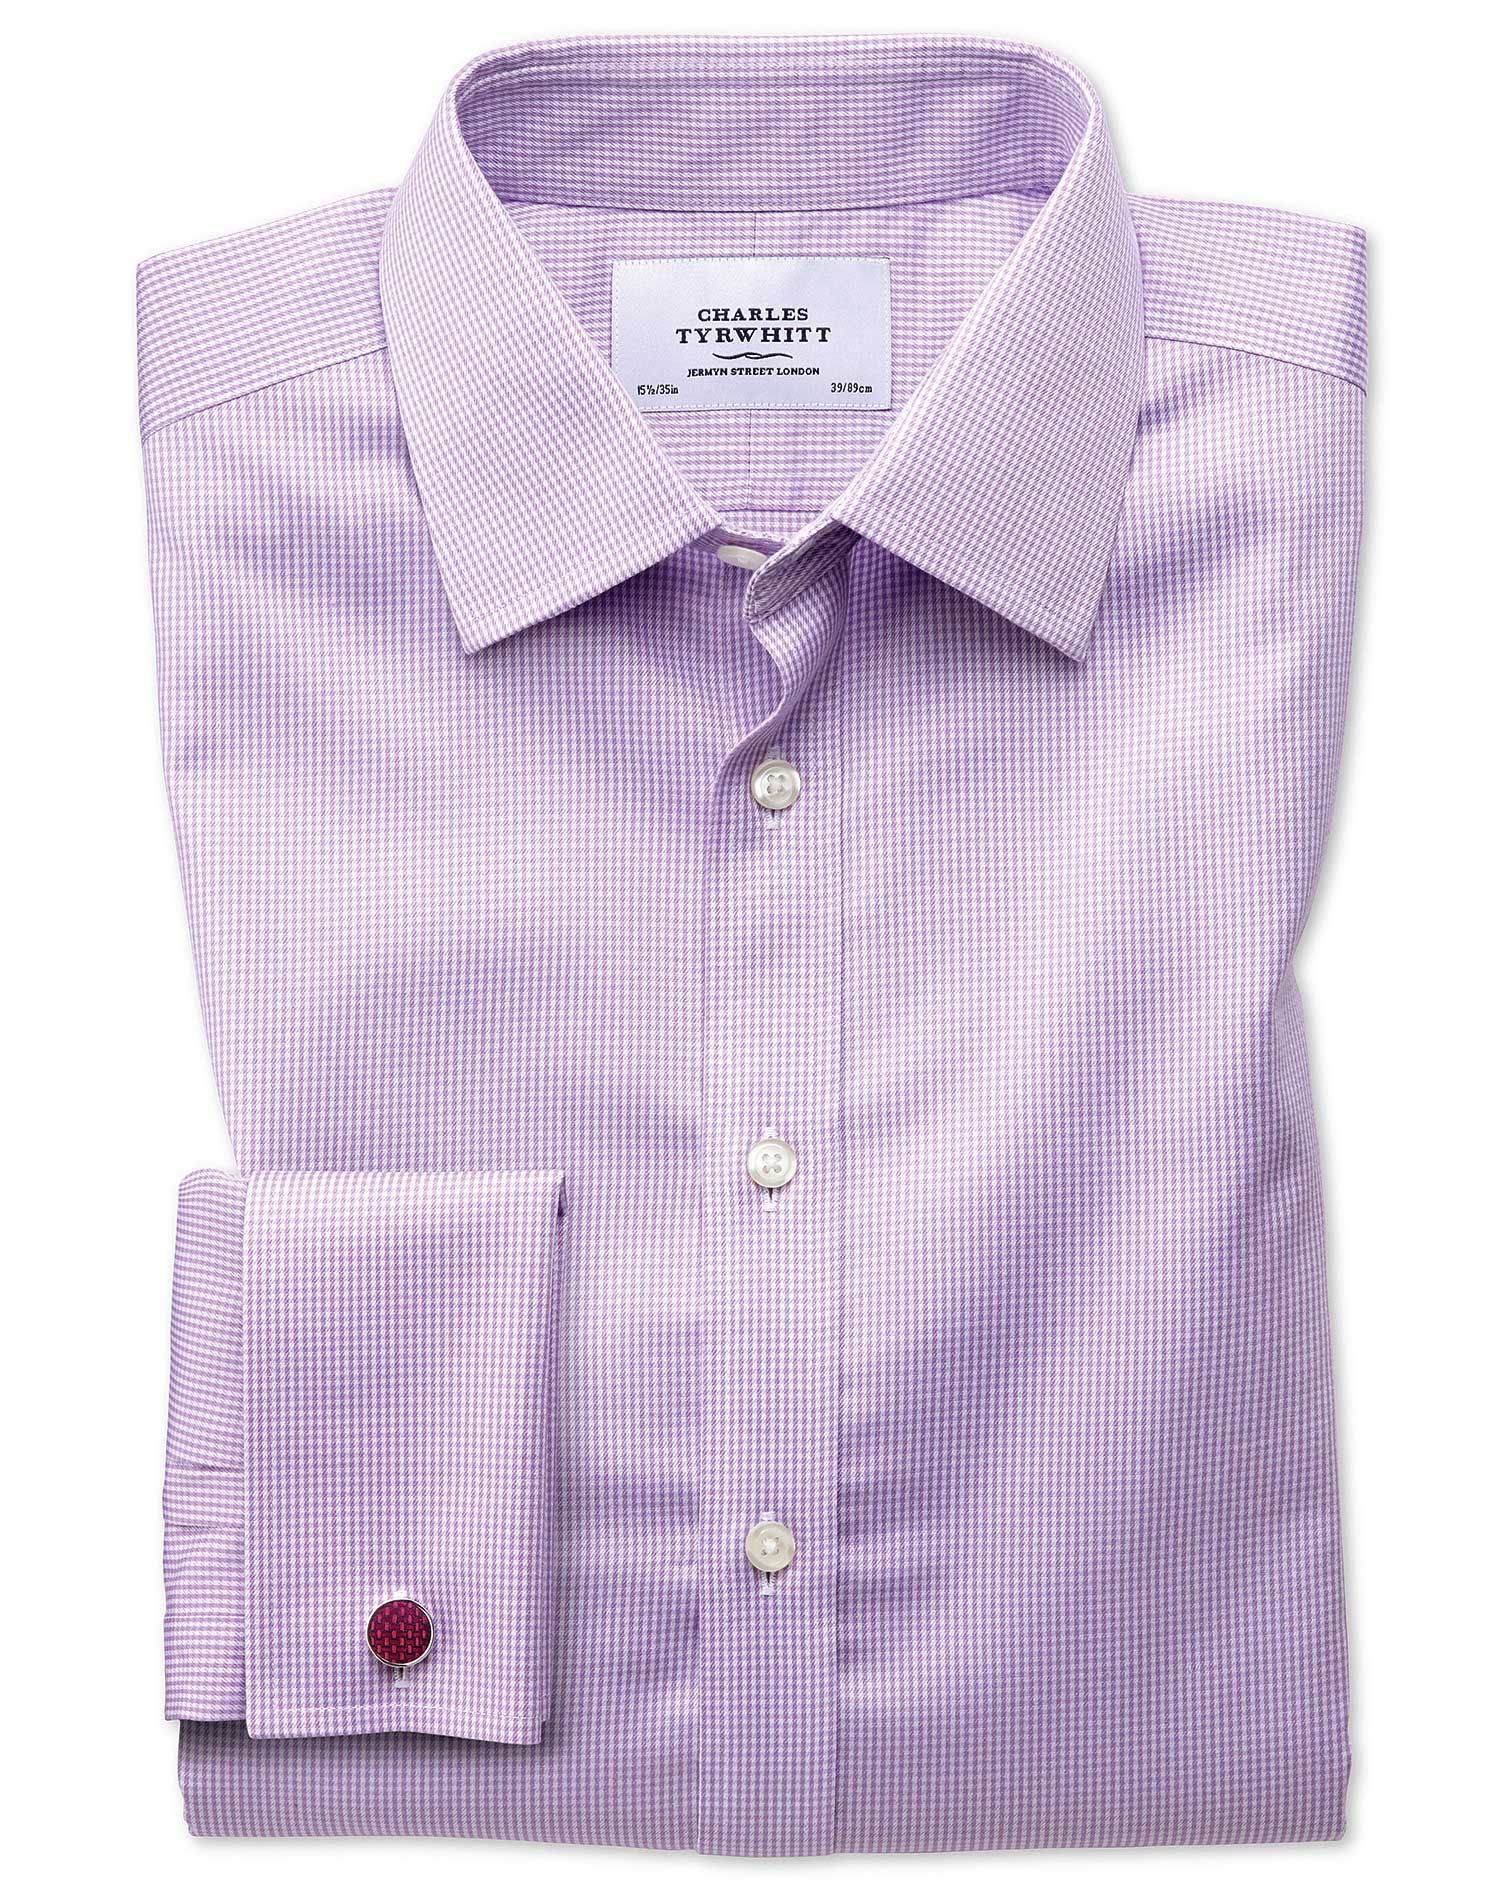 Extra Slim Fit Non-Iron Puppytooth Lilac Cotton Formal Shirt Single Cuff Size 14.5/33 by Charles Tyr